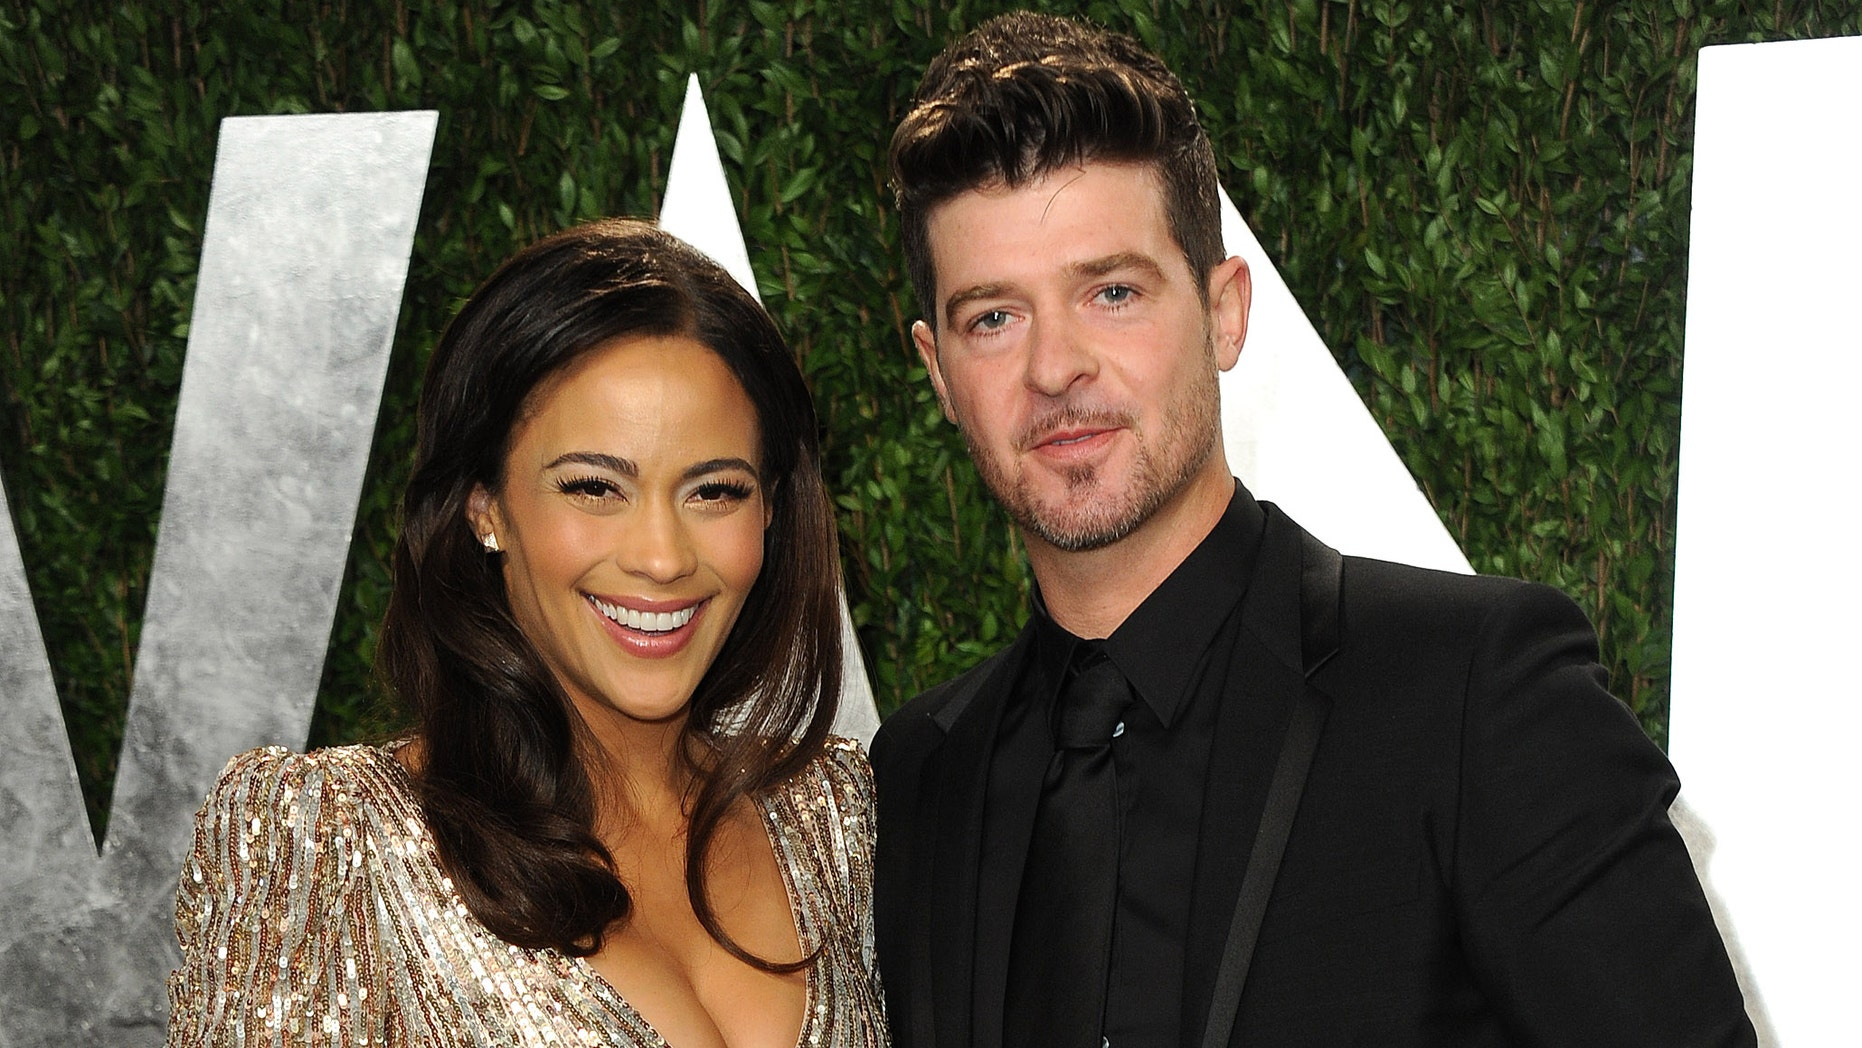 FILE - In this Feb. 24, 2013 file photo, Paula Patton and Robin Thicke arrive at the 2013 Vanity Fair Oscars Viewing and After Party at the Sunset Plaza Hotel in West Hollywood, Calif. Thicke is thanking his fans for their support following his separation from his wife and canceled tour dates. Thicke and actress Paula Patton announced Monday they are separating after being married for nine years. They have a three-year-old son, and Patton was the inspiration behind much of Thicke's music and appeared in some of his music videos. (Photo by Jordan Strauss/Invision/AP, File)